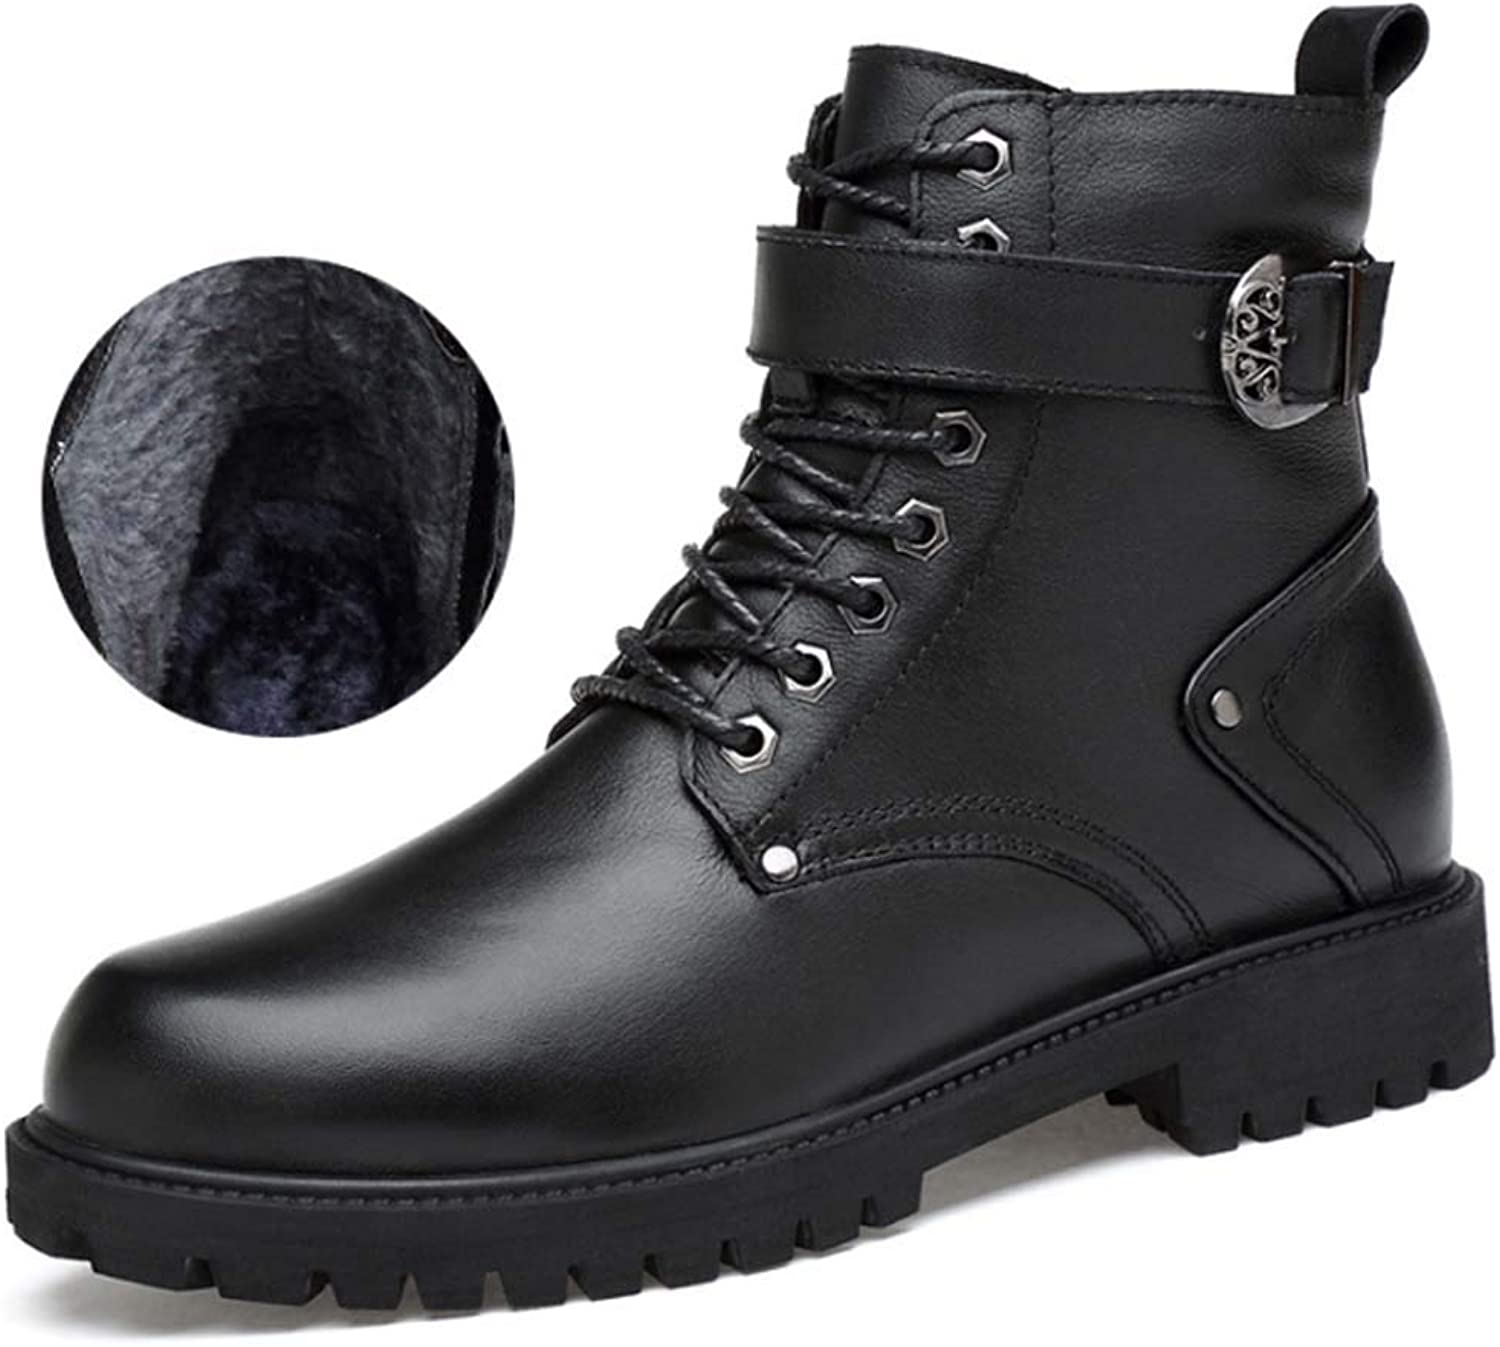 Men Leather Combat Boots,Winter Lace Up Martin Boots Hiking Walking Ankle Boots shoes Waterproof Comfortable Sneakers